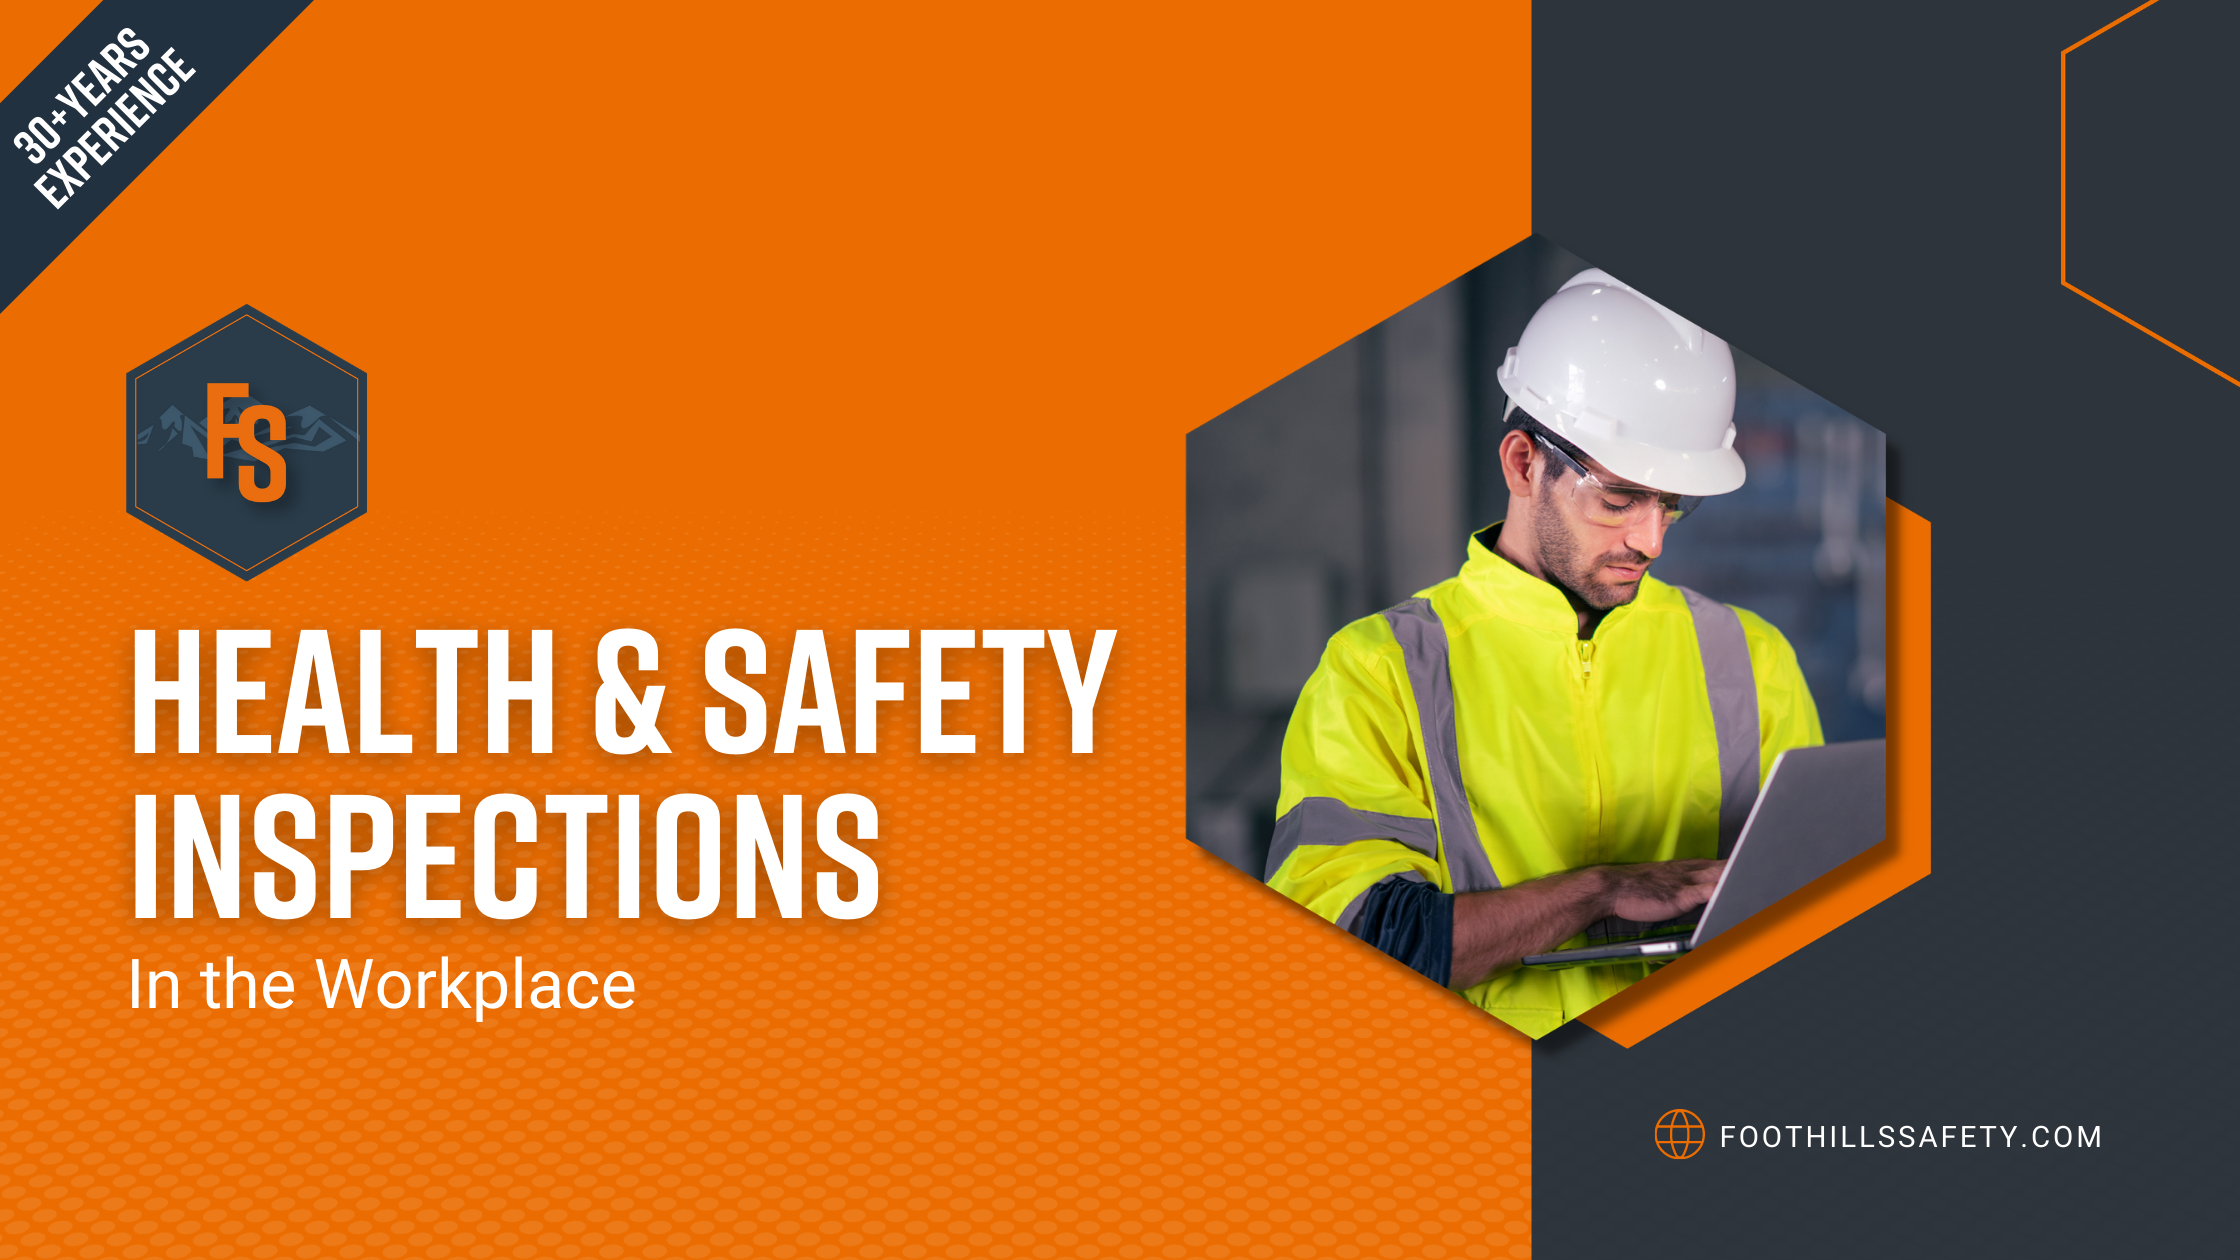 Health and Safety Inspections in the Workplace